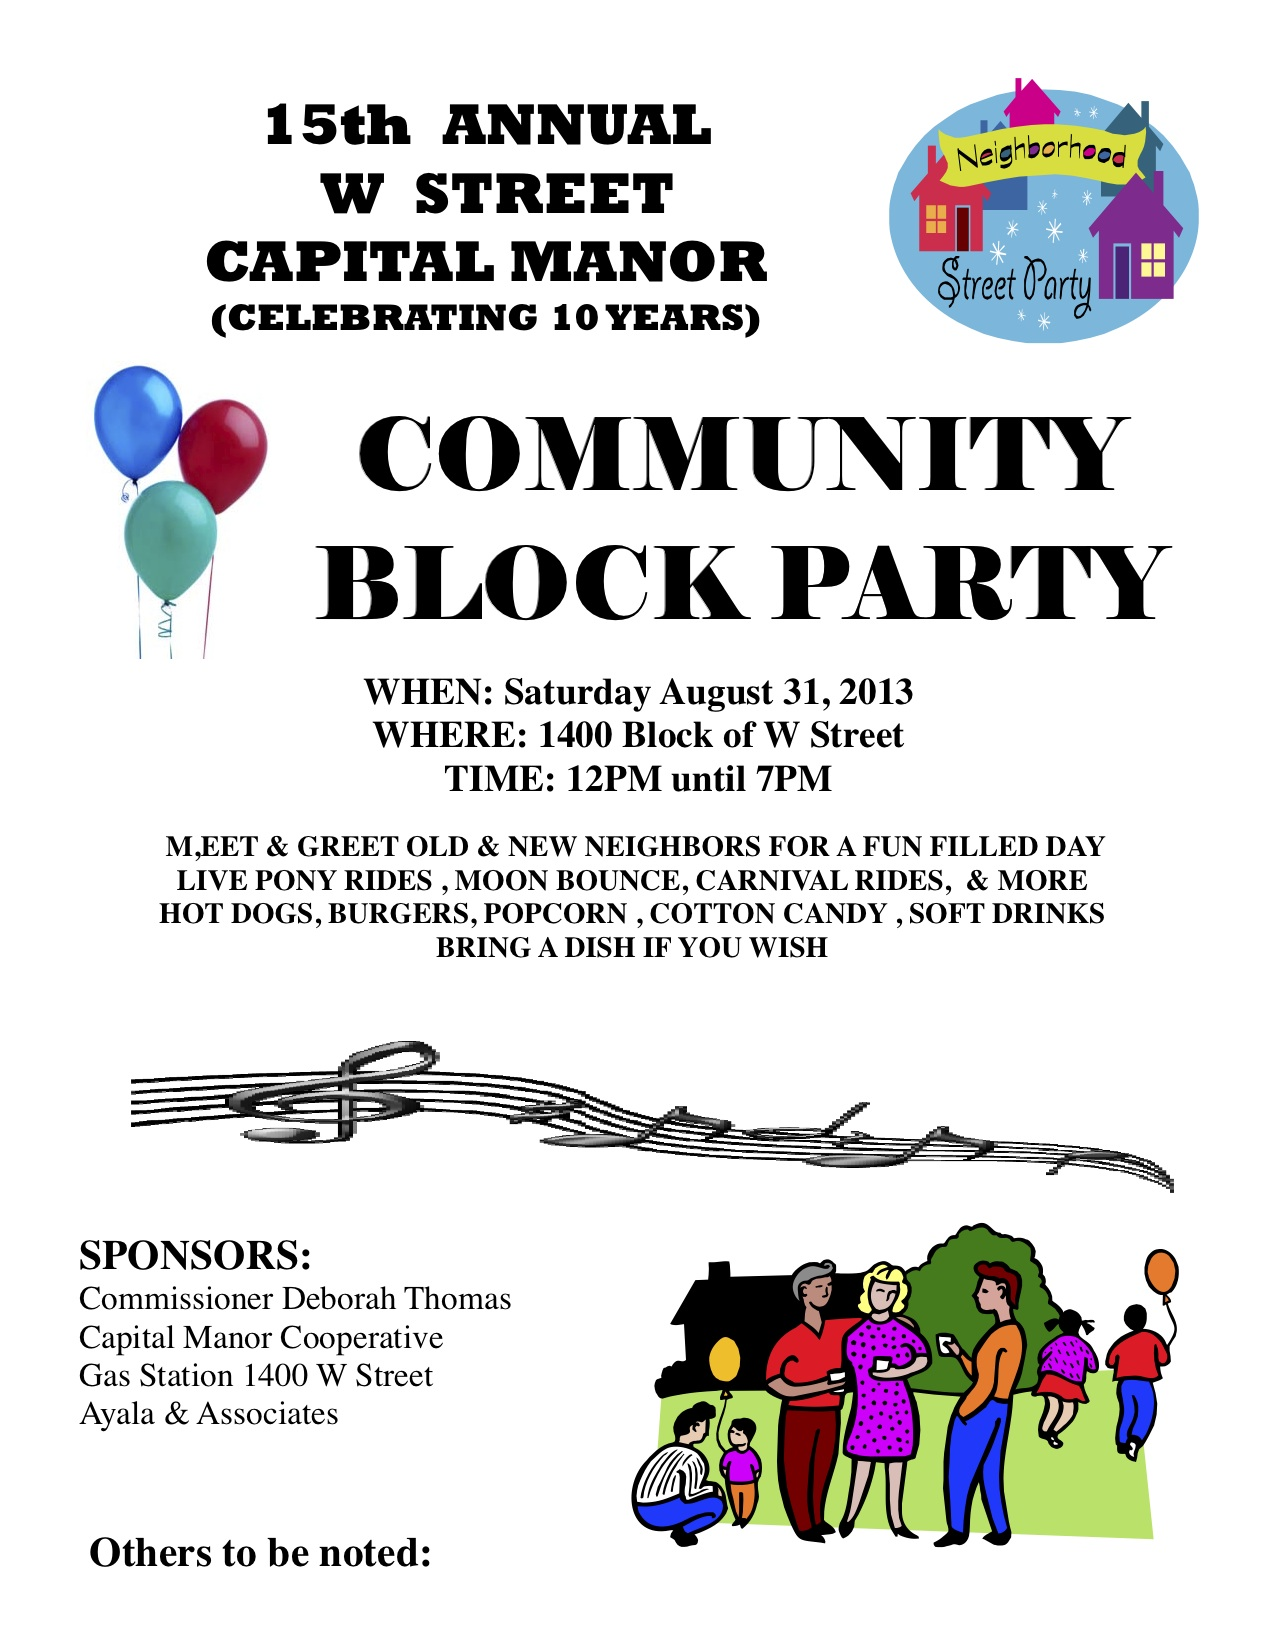 15th annual w street capital manor community block party saturday